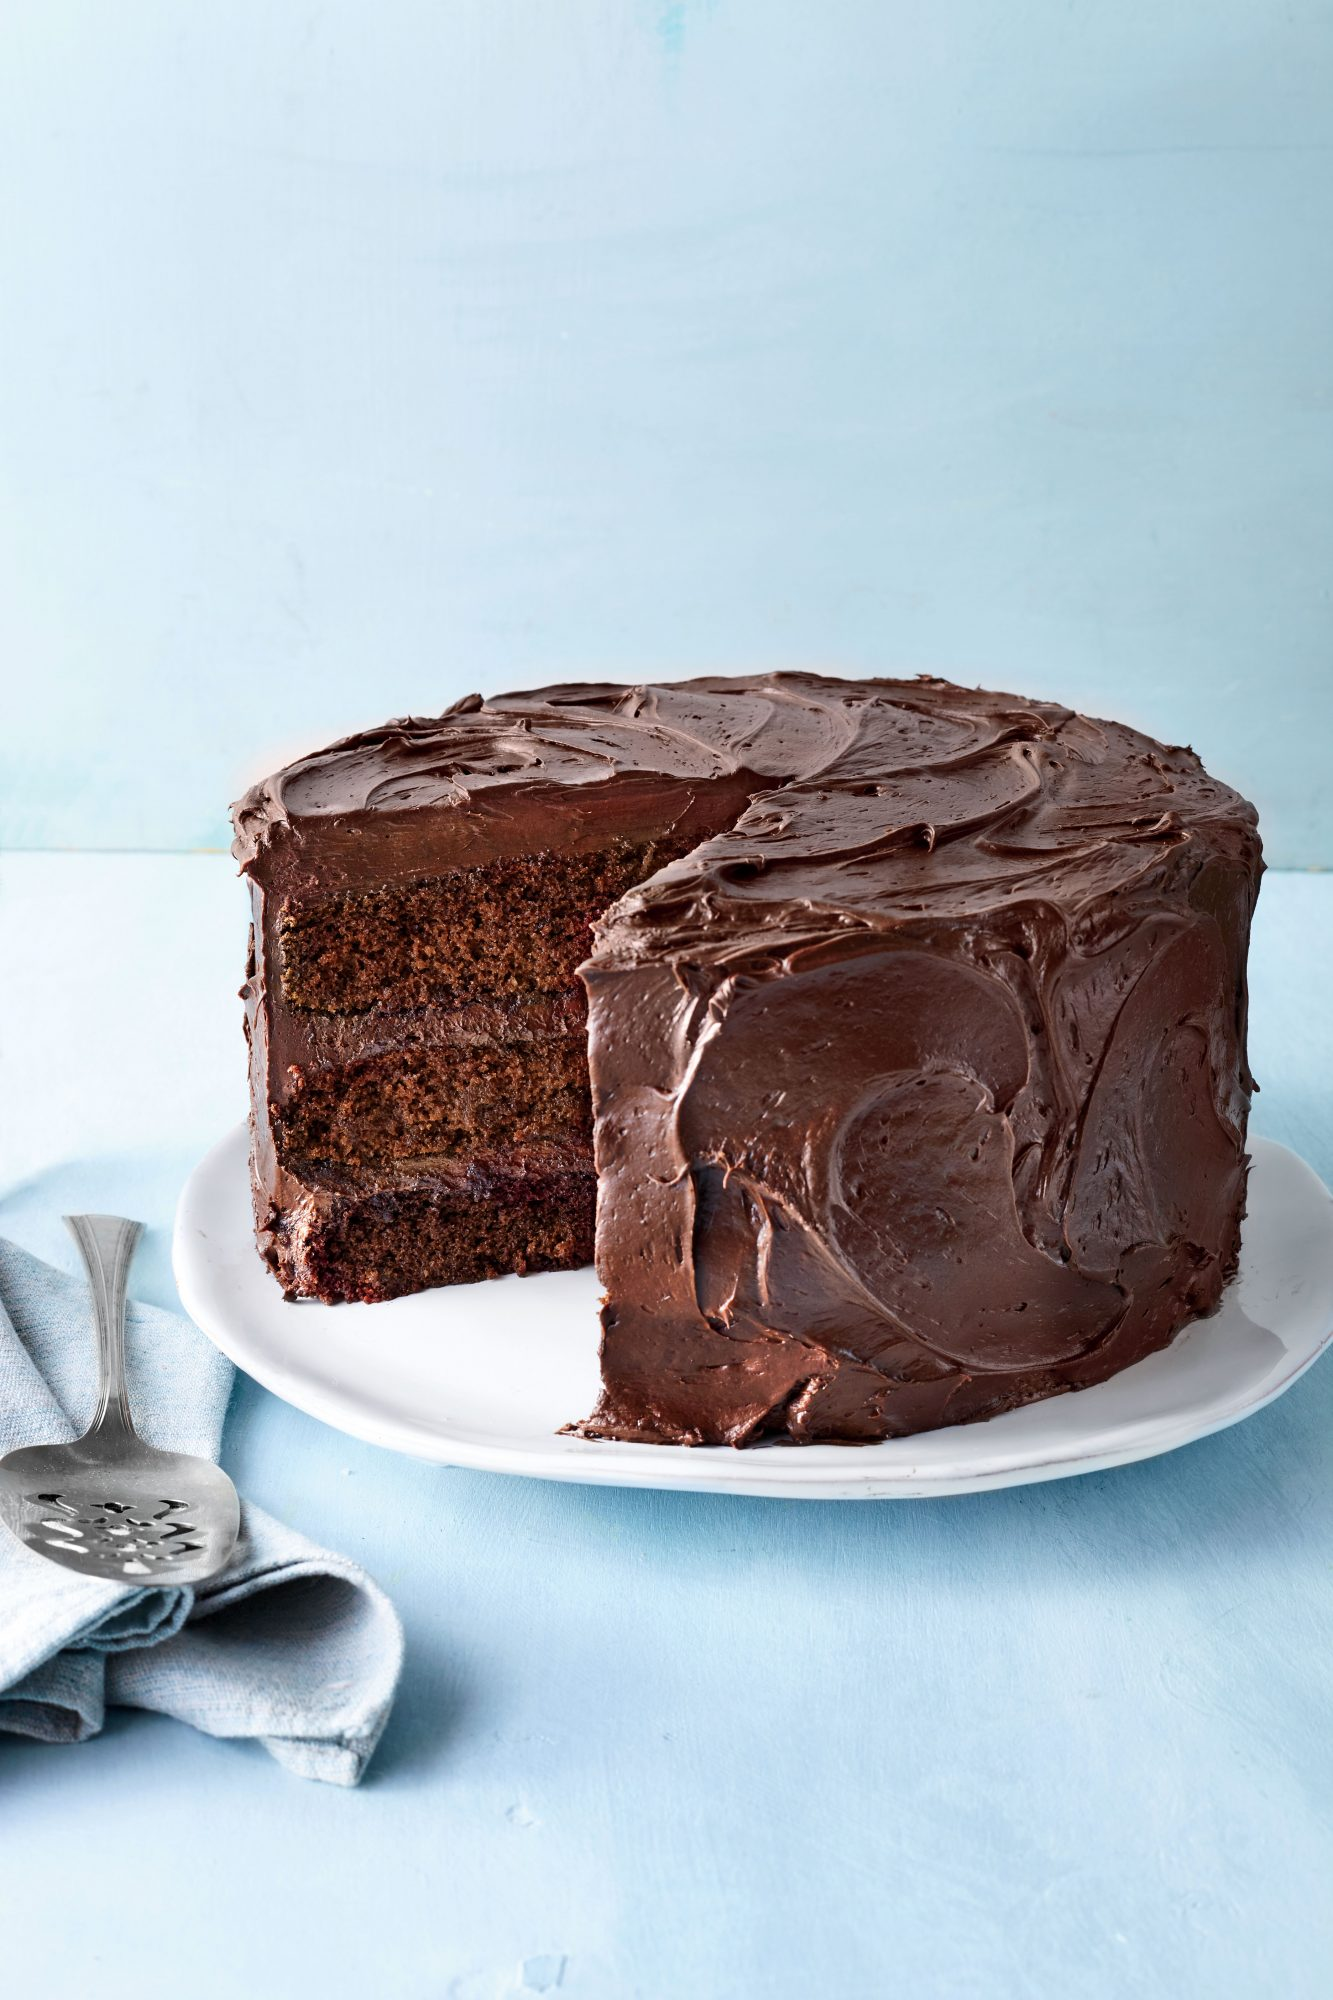 The Secret Ingredient I Add to Boxed Cake Mix